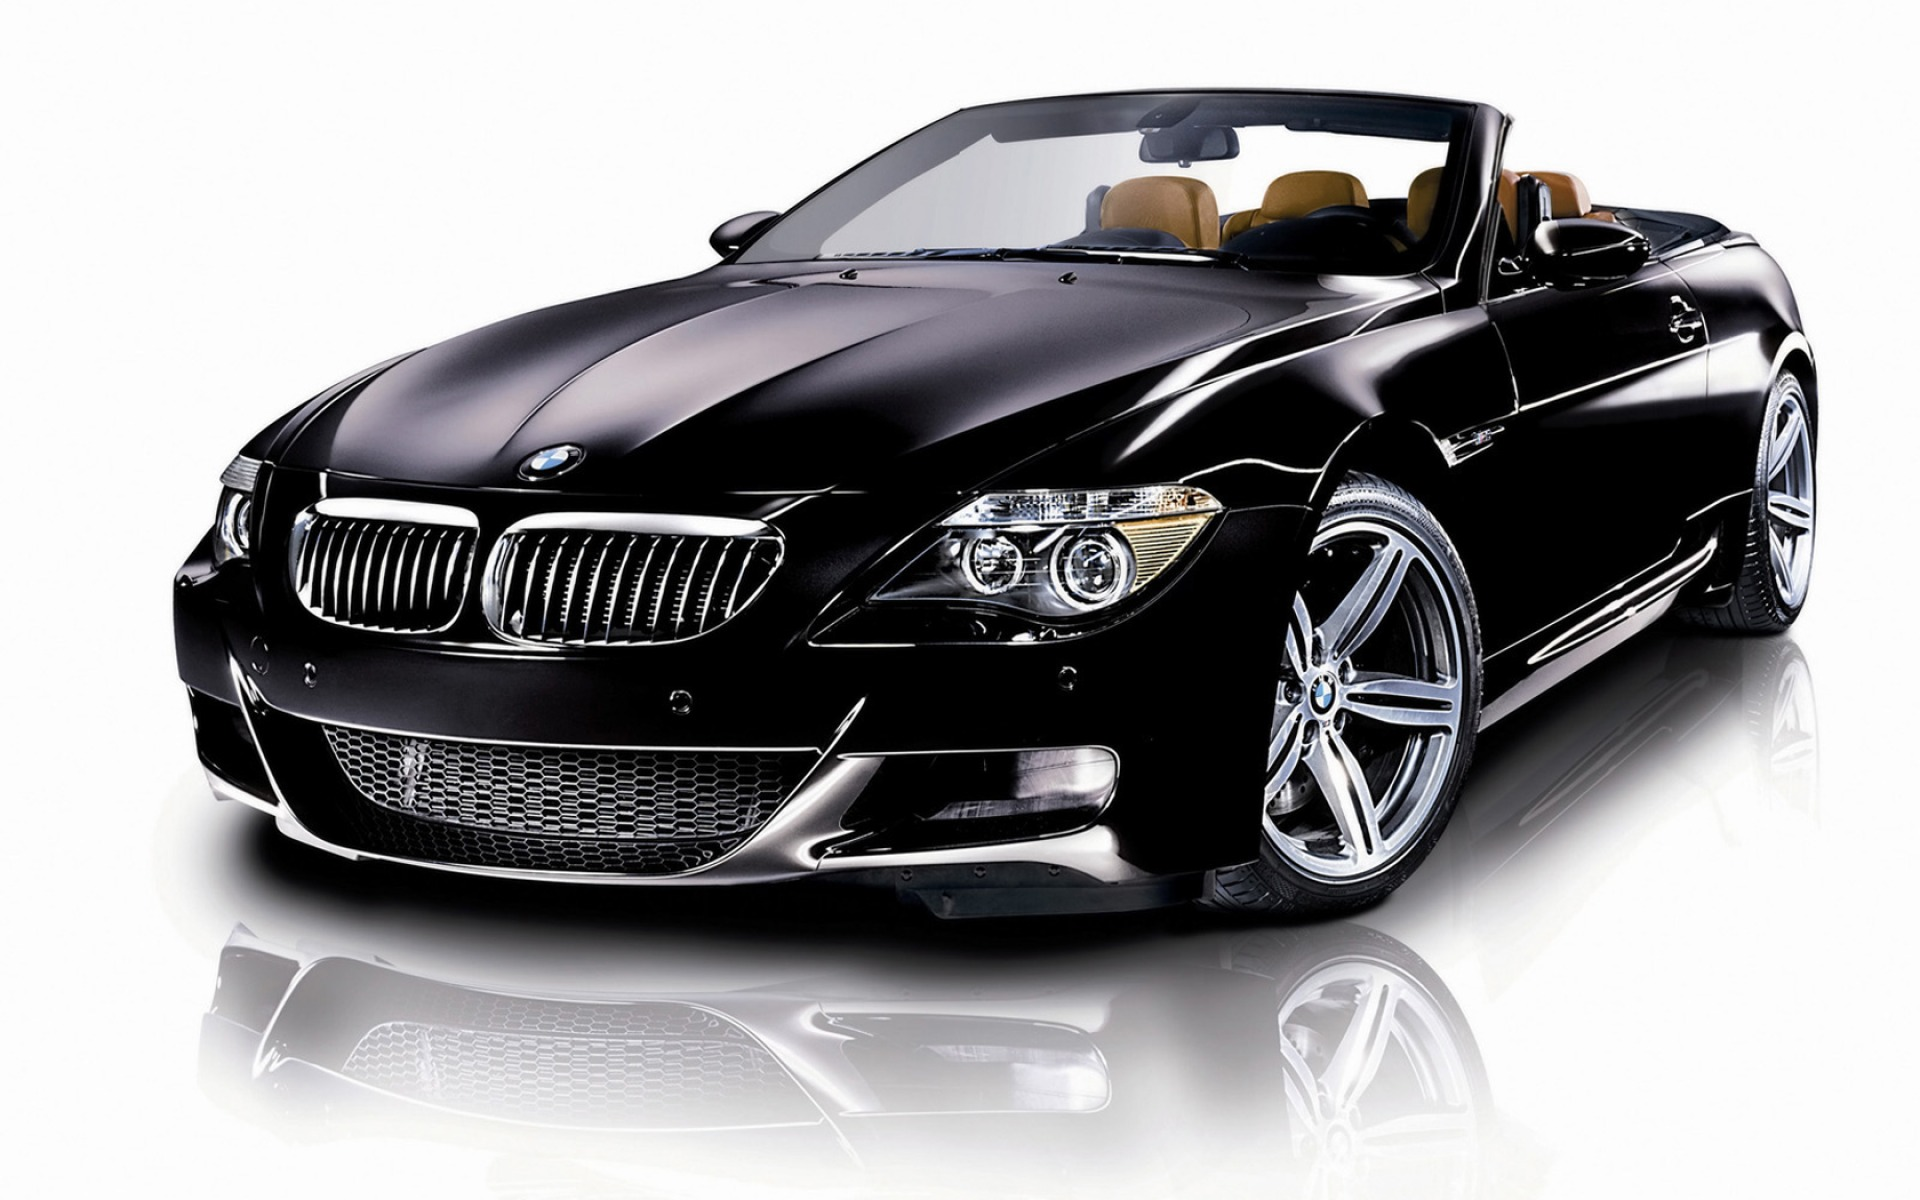 Ultrablogus  Unusual Bmw Car Wallpaper Wallpapers For Free Download About   With Marvelous Bmw M Convertible Wallpaper Bmw Cars With Delightful  Mustang Interior Also Cadillac Seville Interior In Addition Bmw Suv Interior And Custom Step Van Interior As Well As Interior Toyota Corolla  Additionally  Monte Carlo Ss Interior From Allfreedownloadcom With Ultrablogus  Marvelous Bmw Car Wallpaper Wallpapers For Free Download About   With Delightful Bmw M Convertible Wallpaper Bmw Cars And Unusual  Mustang Interior Also Cadillac Seville Interior In Addition Bmw Suv Interior From Allfreedownloadcom